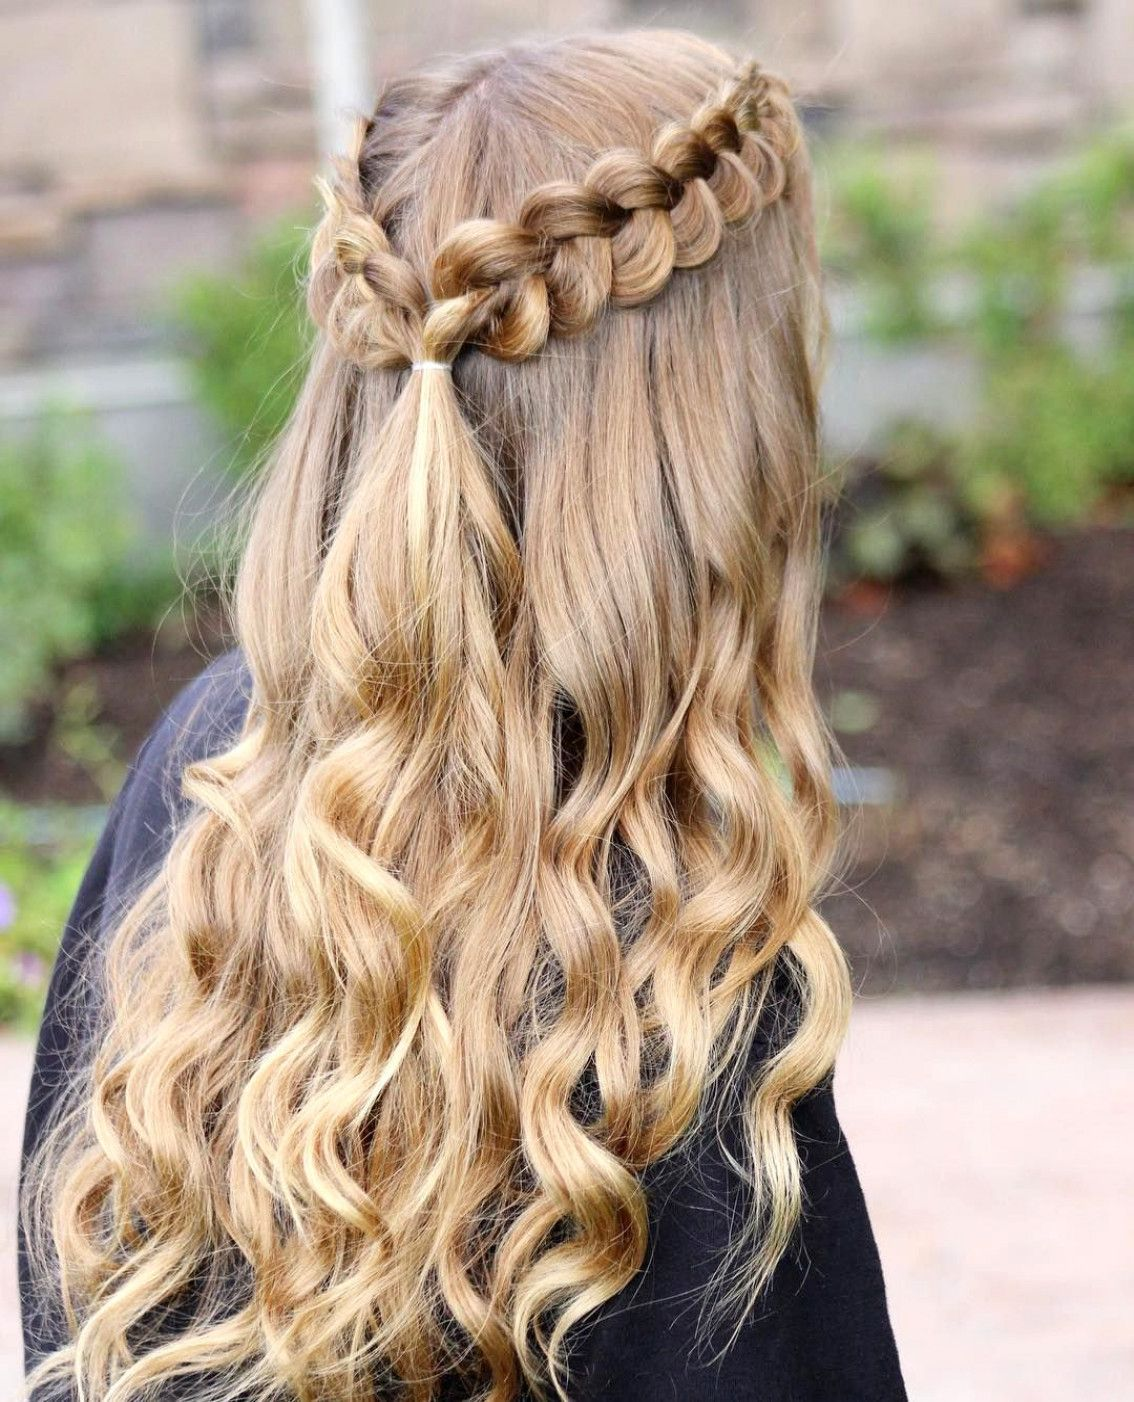 Naturalcurls Cheer Hair In 2019 Dance Hairstyles Braided Prom Hairstyles For Long Hair Simple Prom Hair Hair Styles